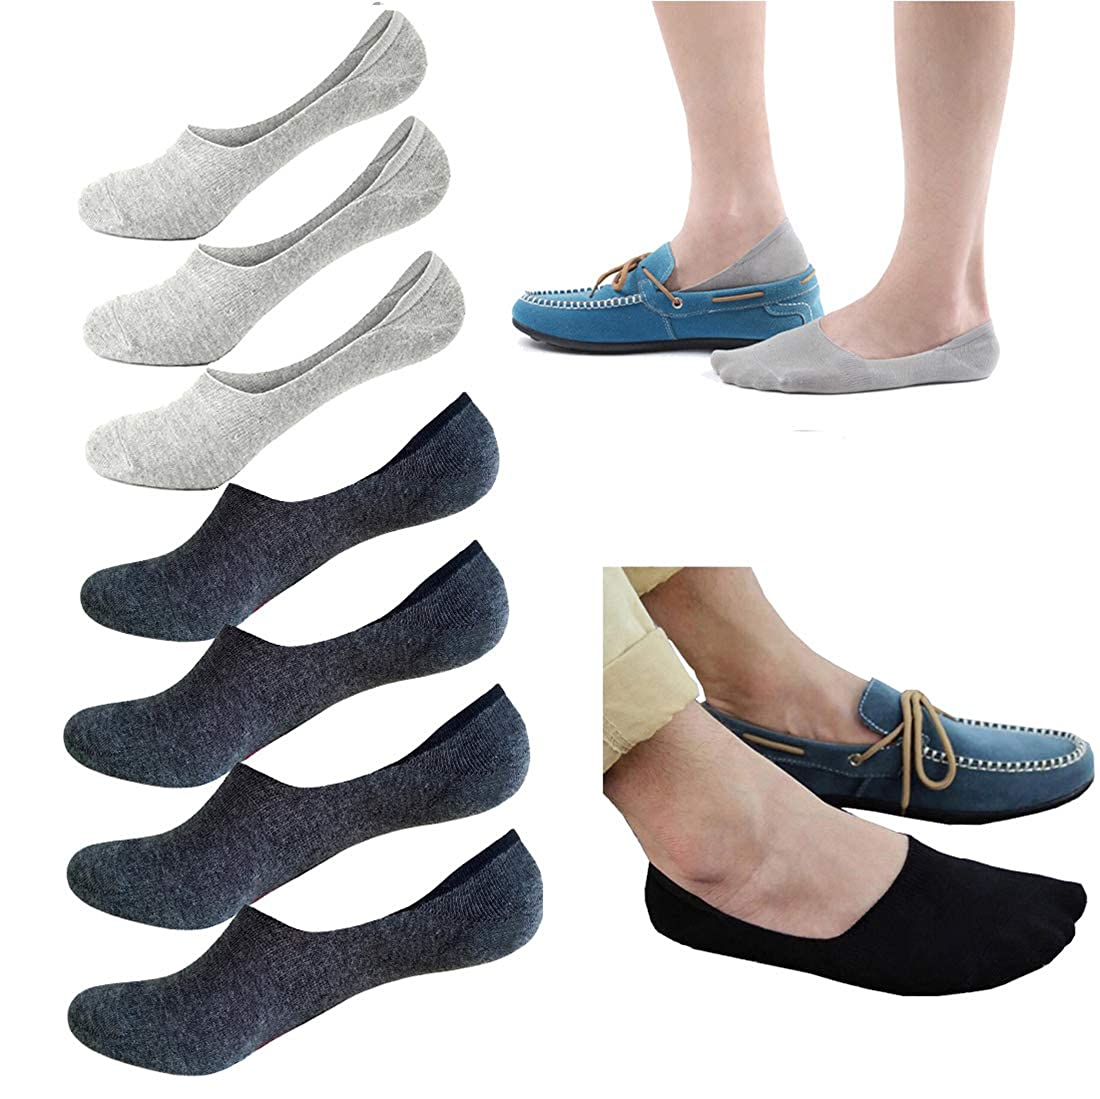 No Show Socks Men Low Cut Cotton Socks Anti-Slip Socks Invisible Liner Socks Loafer Socks 7 pairs